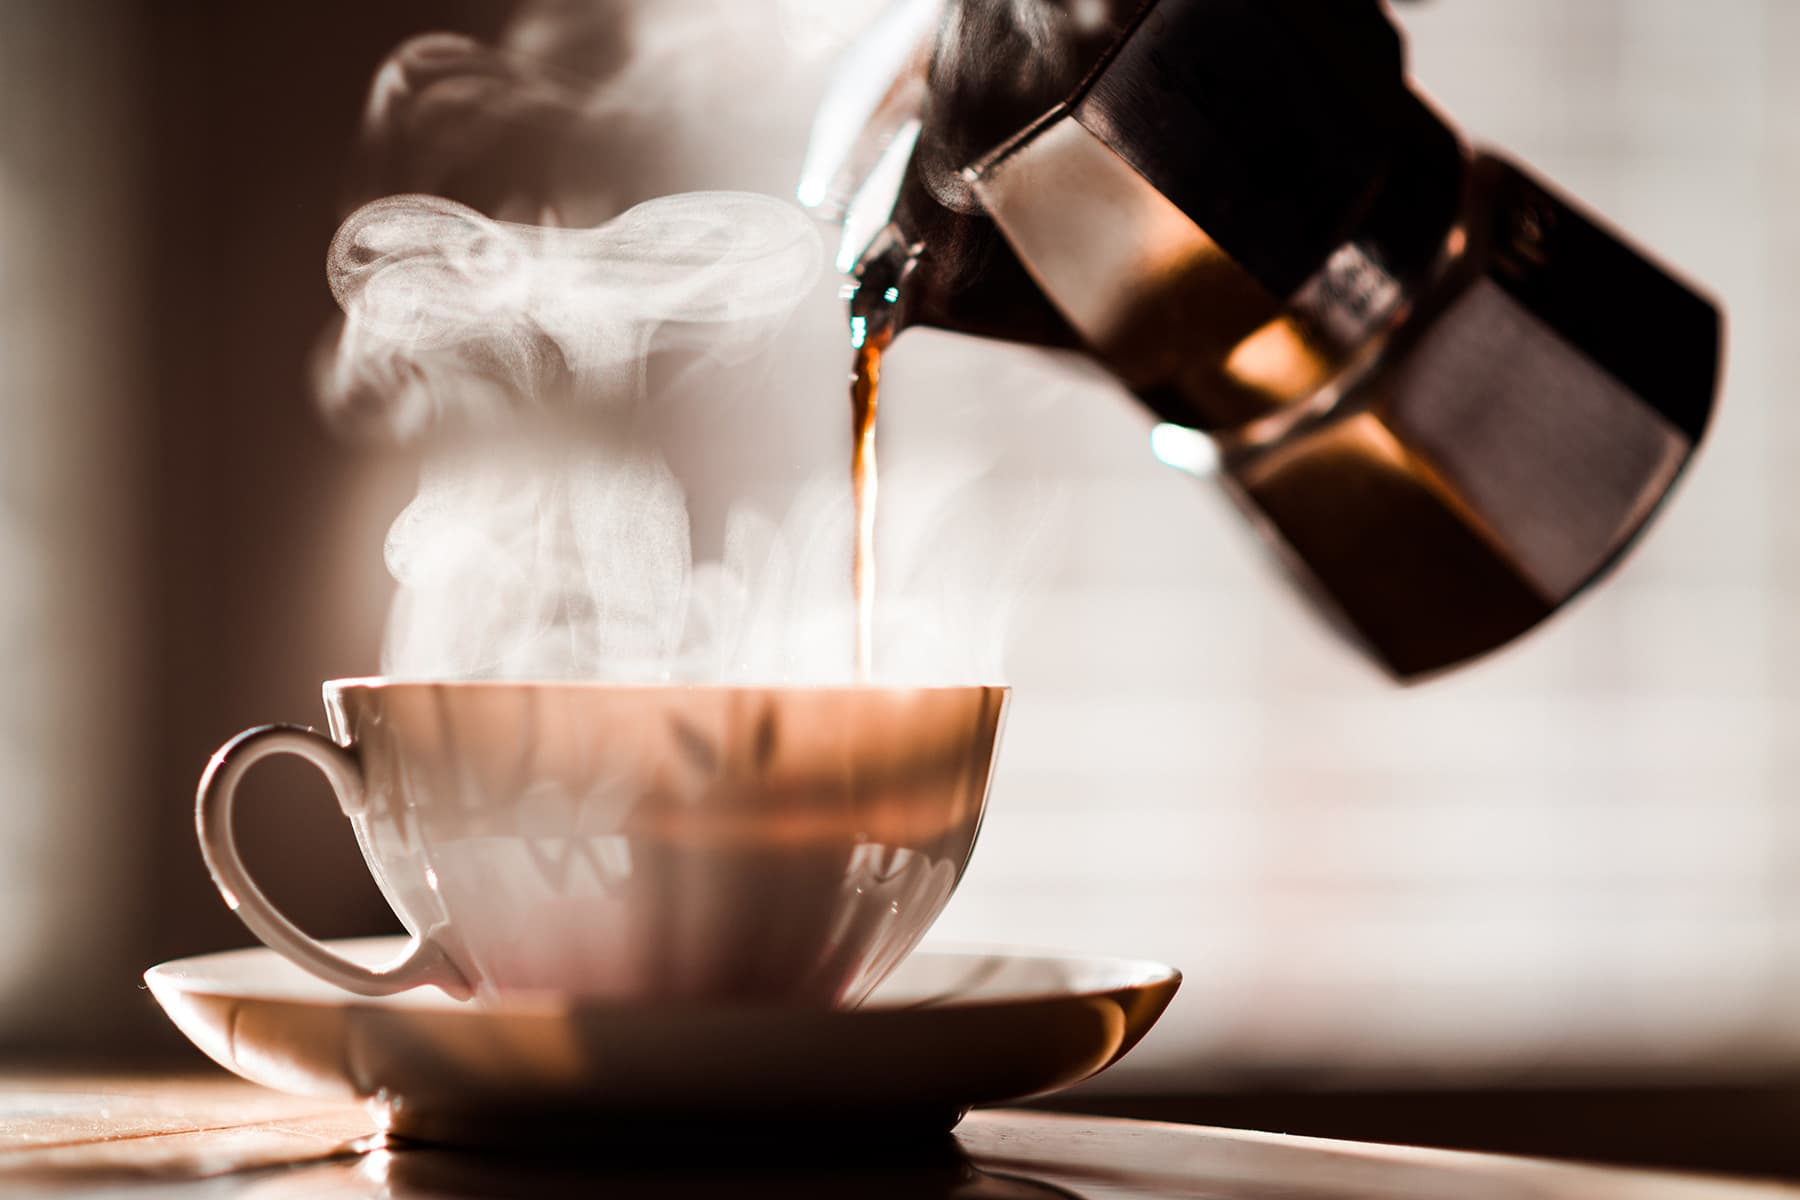 Daily Coffee Tied to Lower Risk for Heart Failure